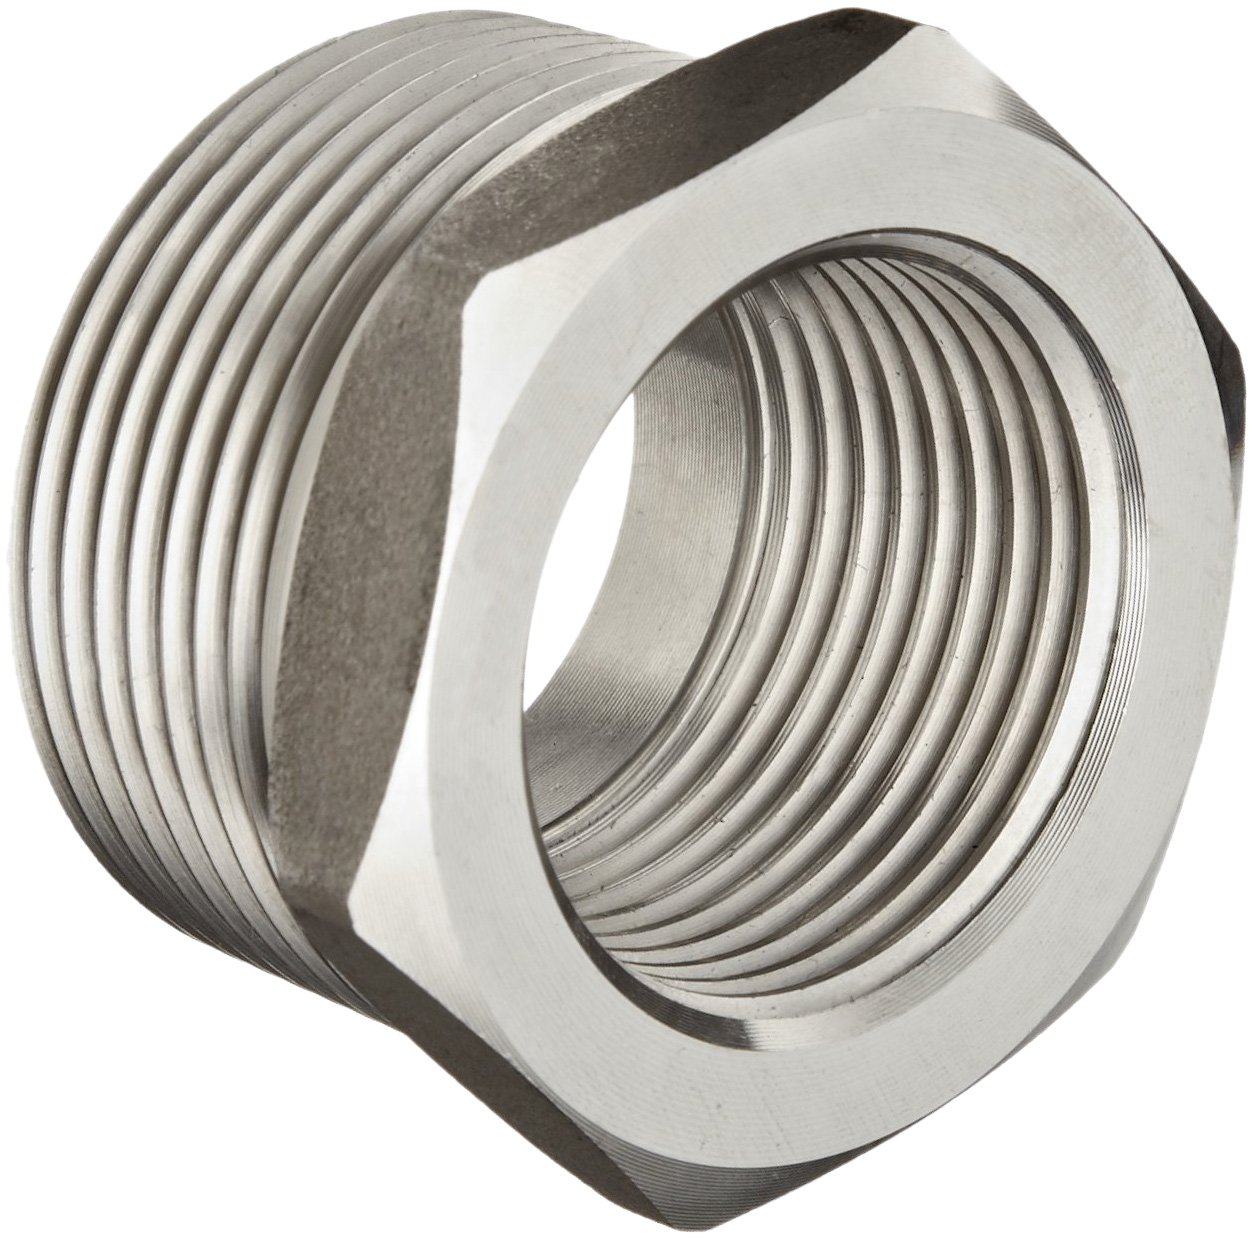 Cheap stainless steel pipe fitting hex head bushing